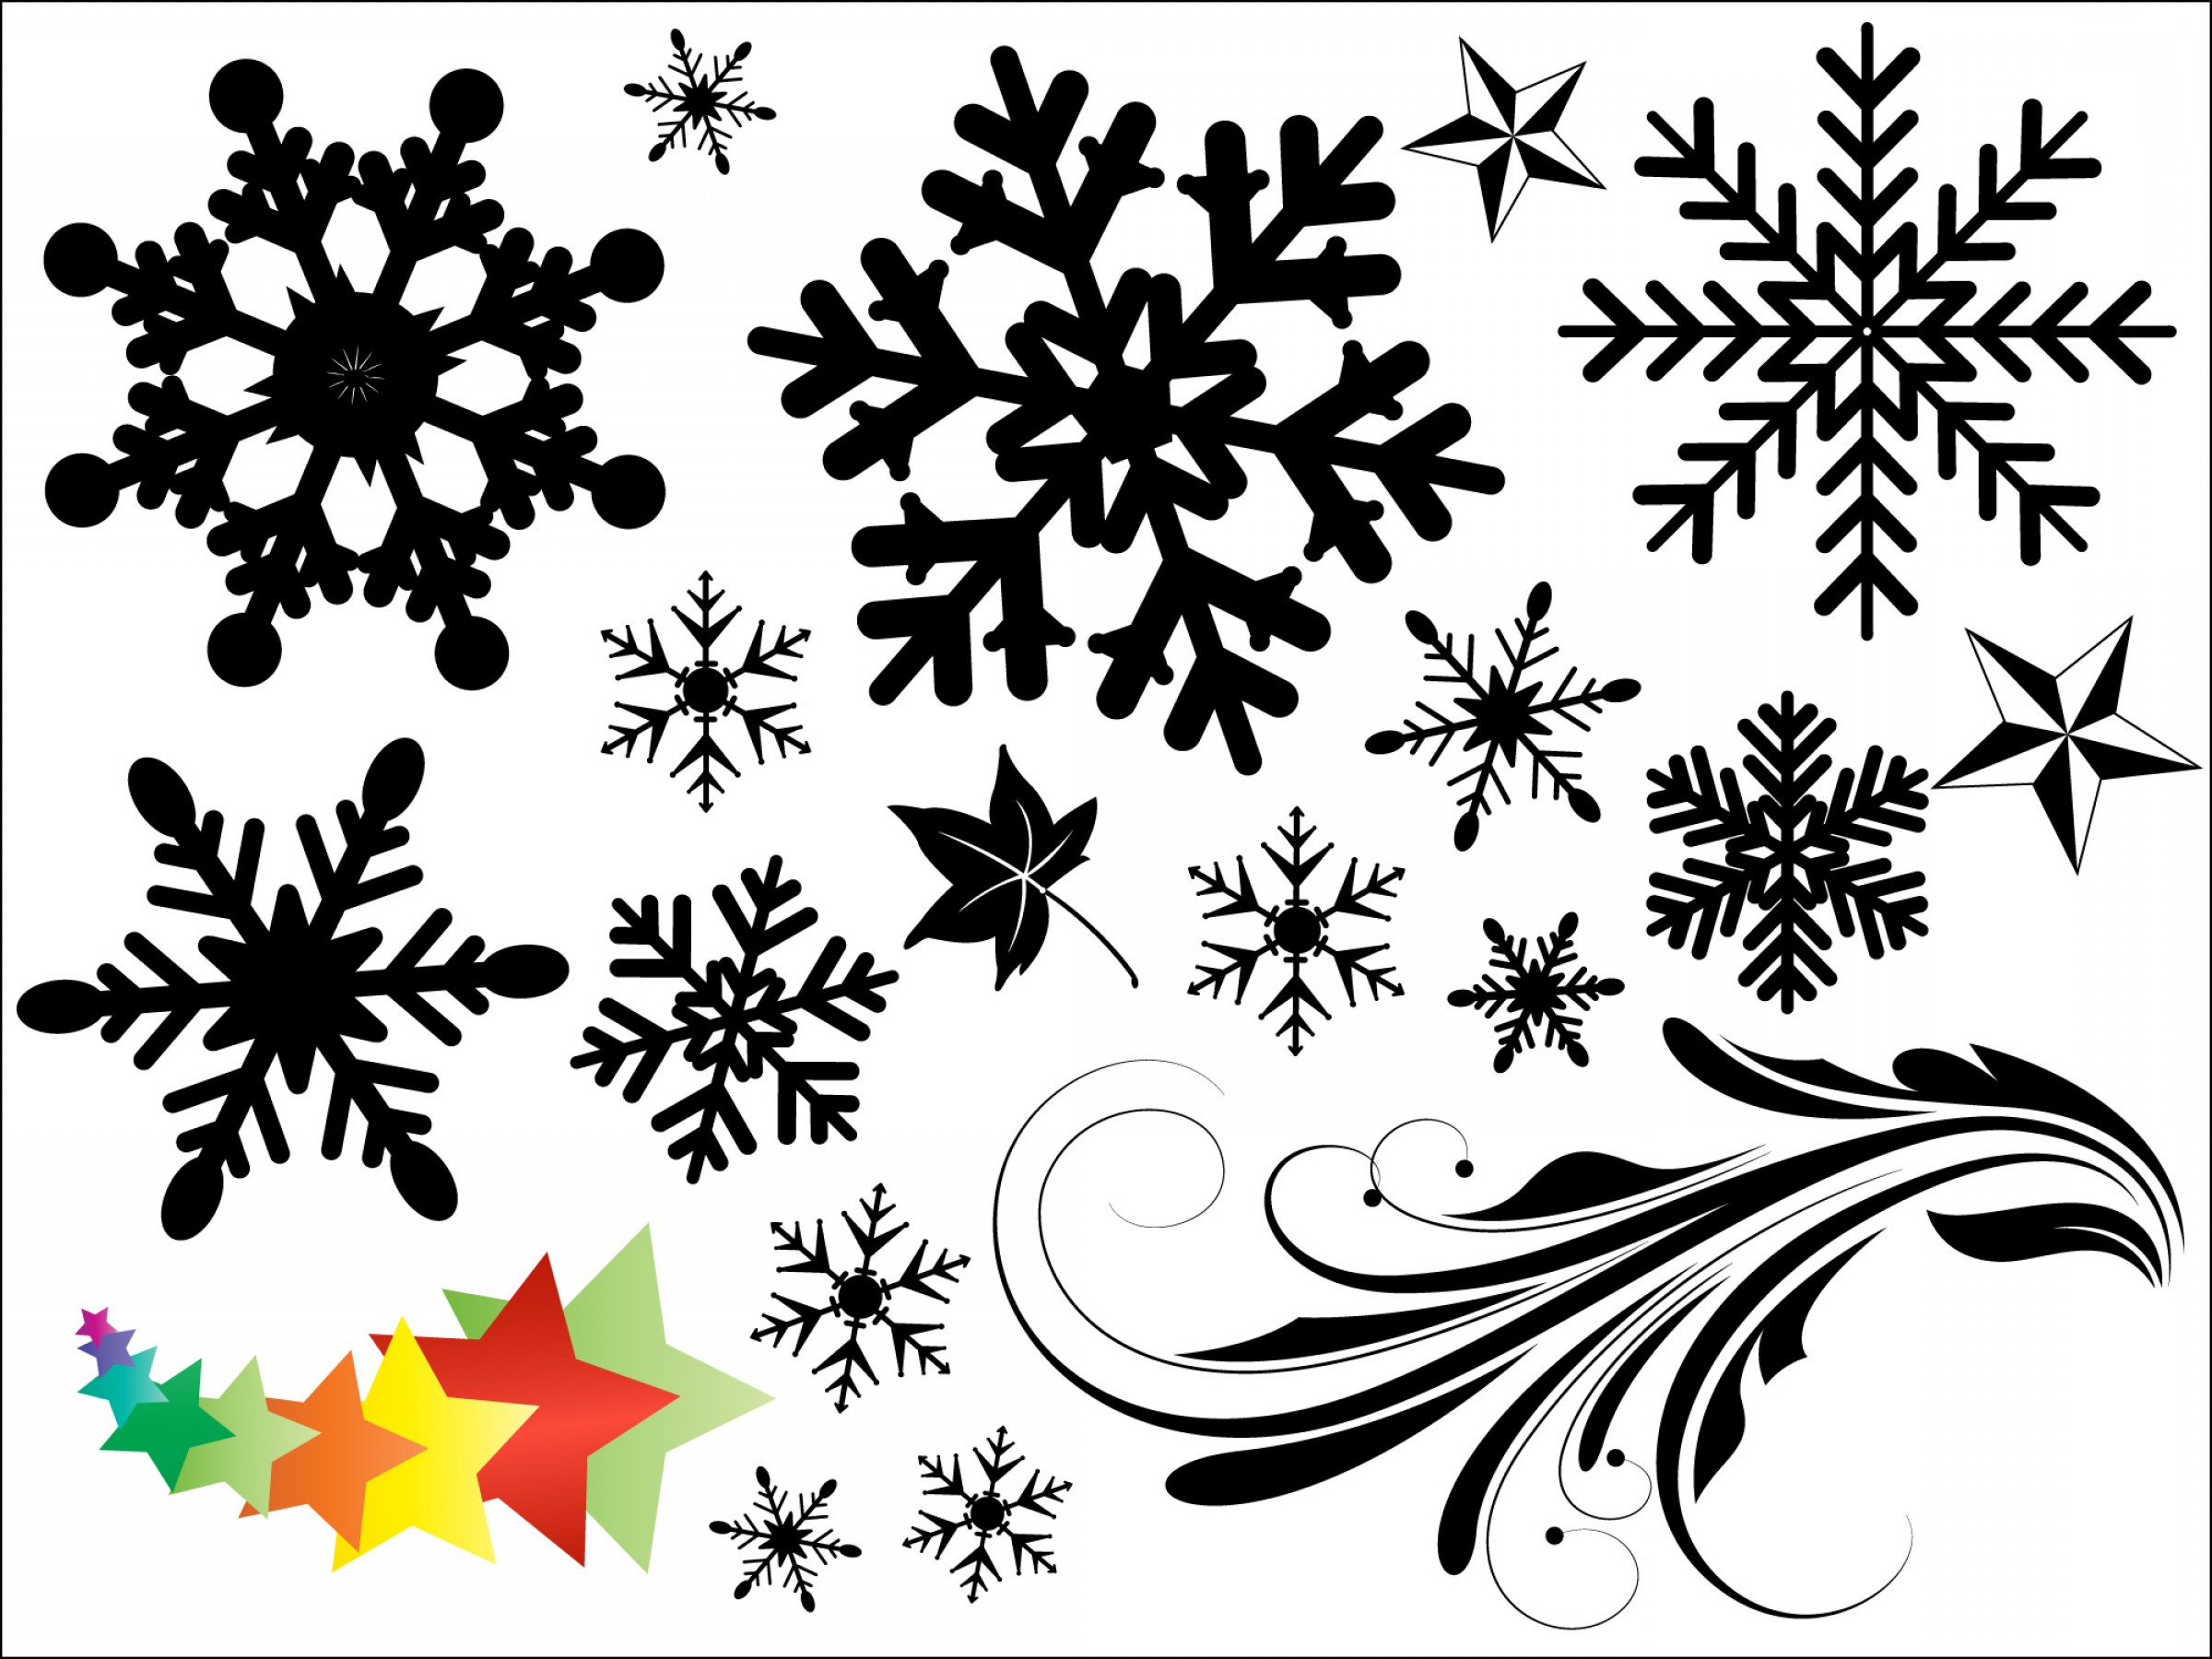 Vector In Photoshop CS5: Snowflakes Vectors Brushes Shapes Png Pictures